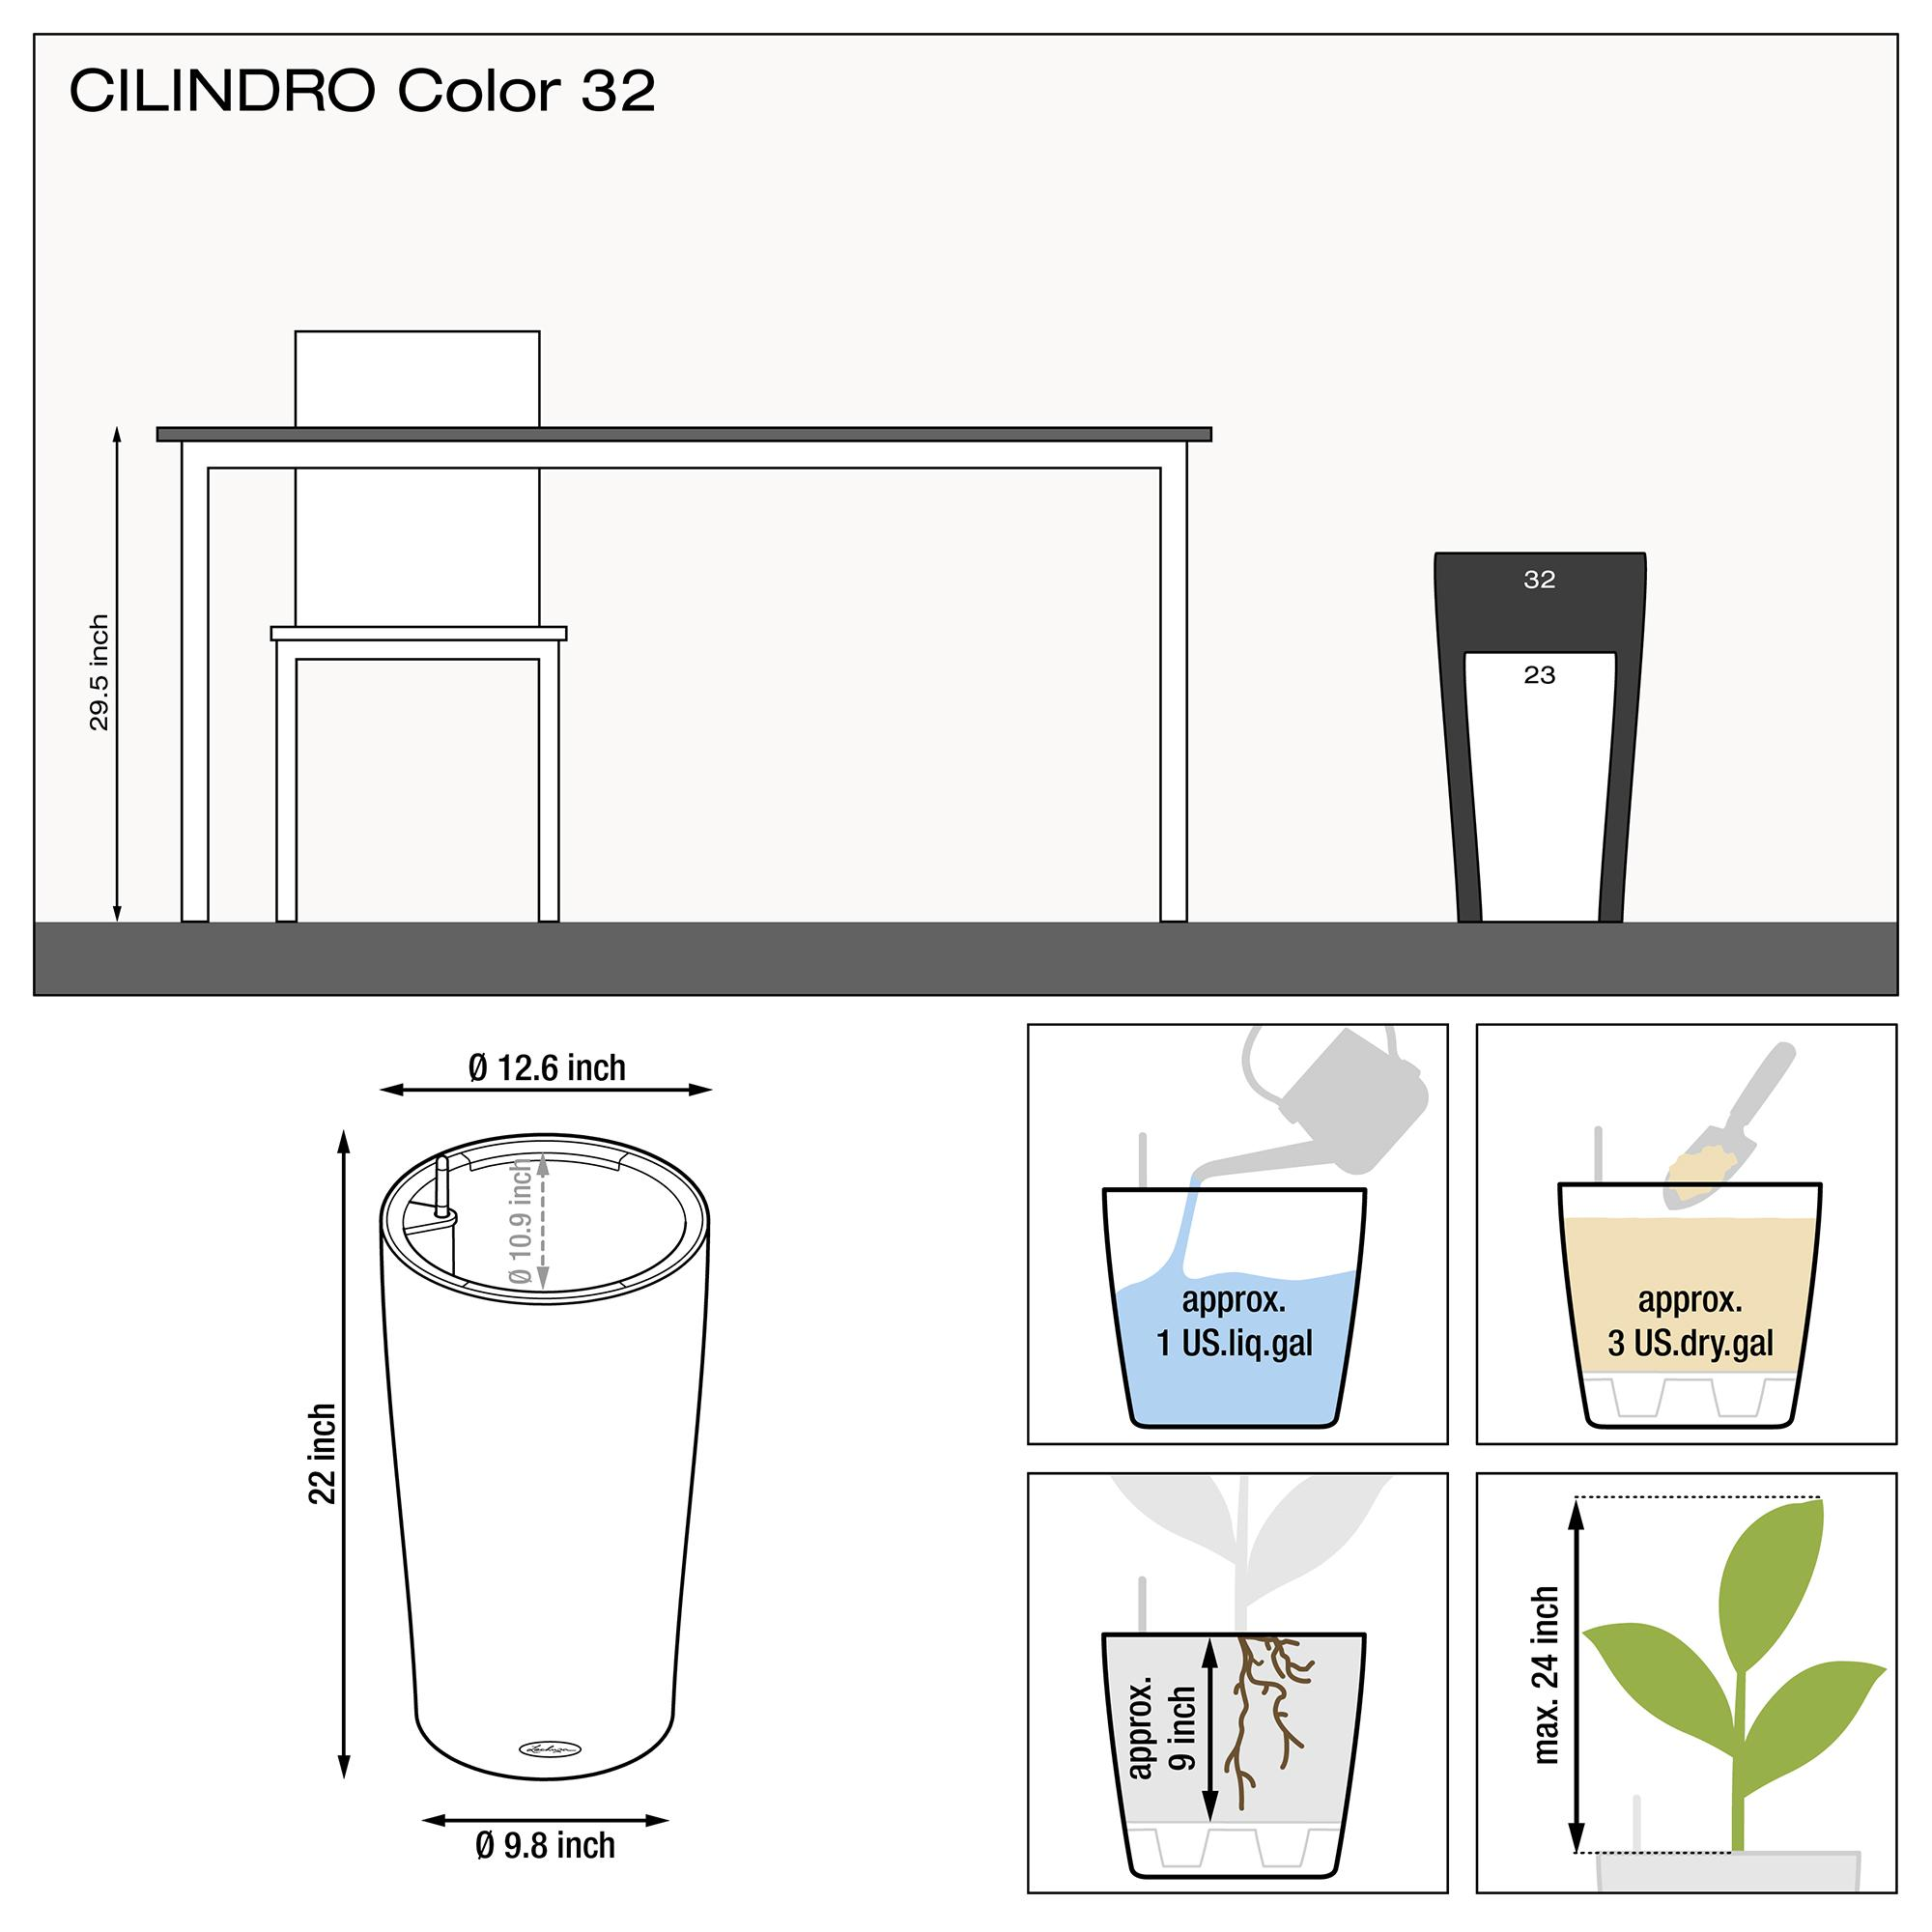 le_cilindro-color32_product_addi_nz_us